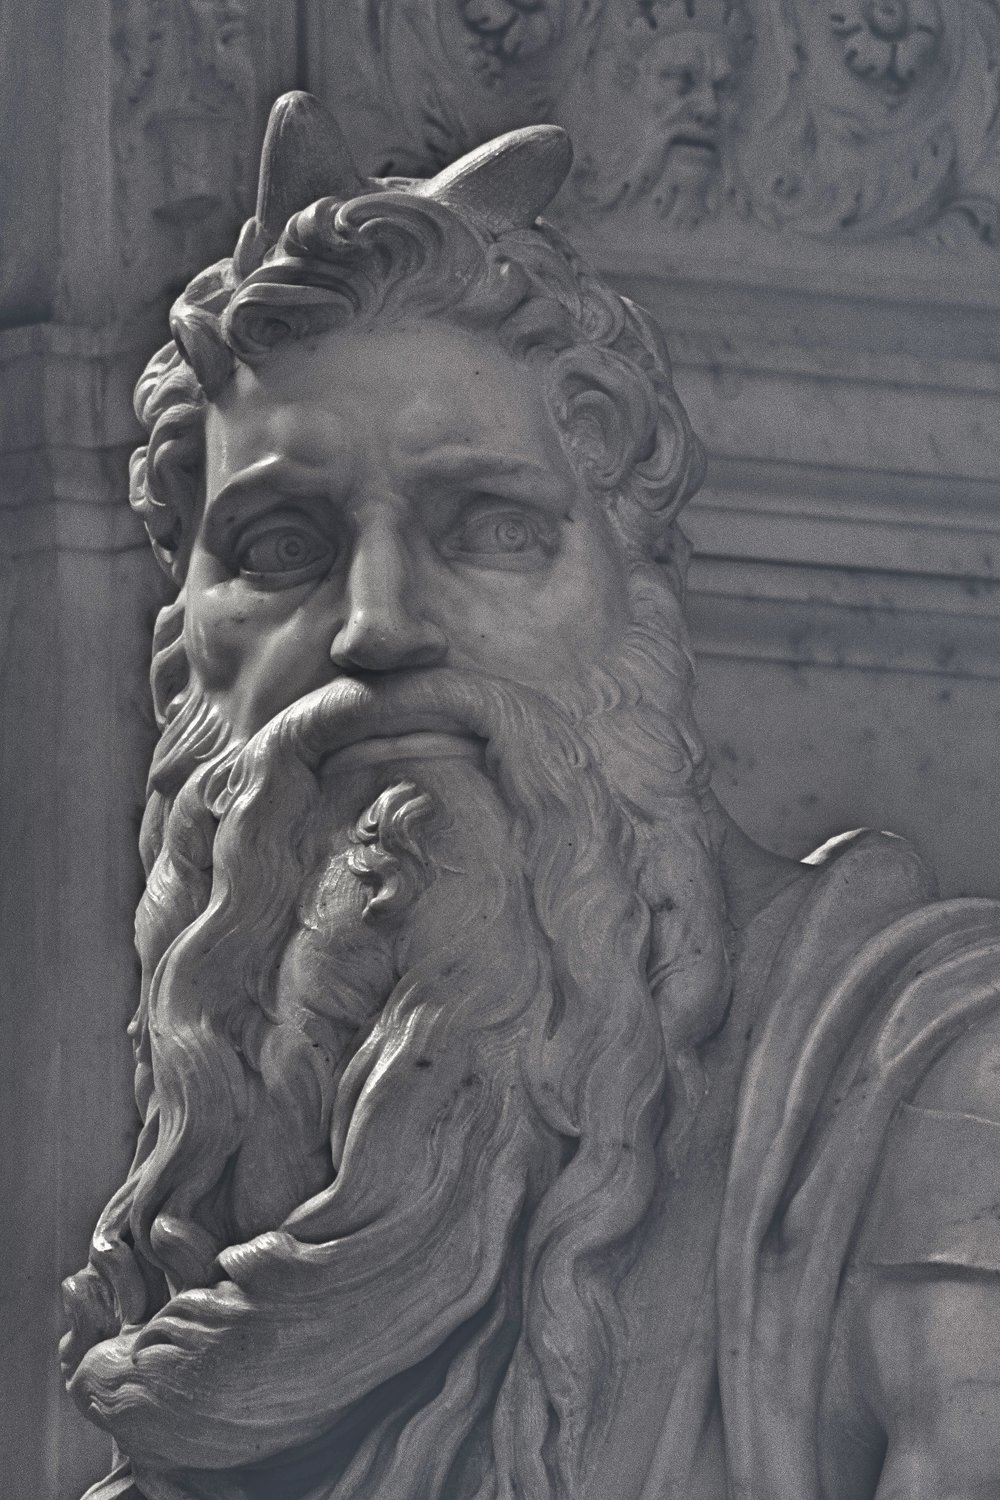 Inspiration-Michelangelo-Moses-06.jpg